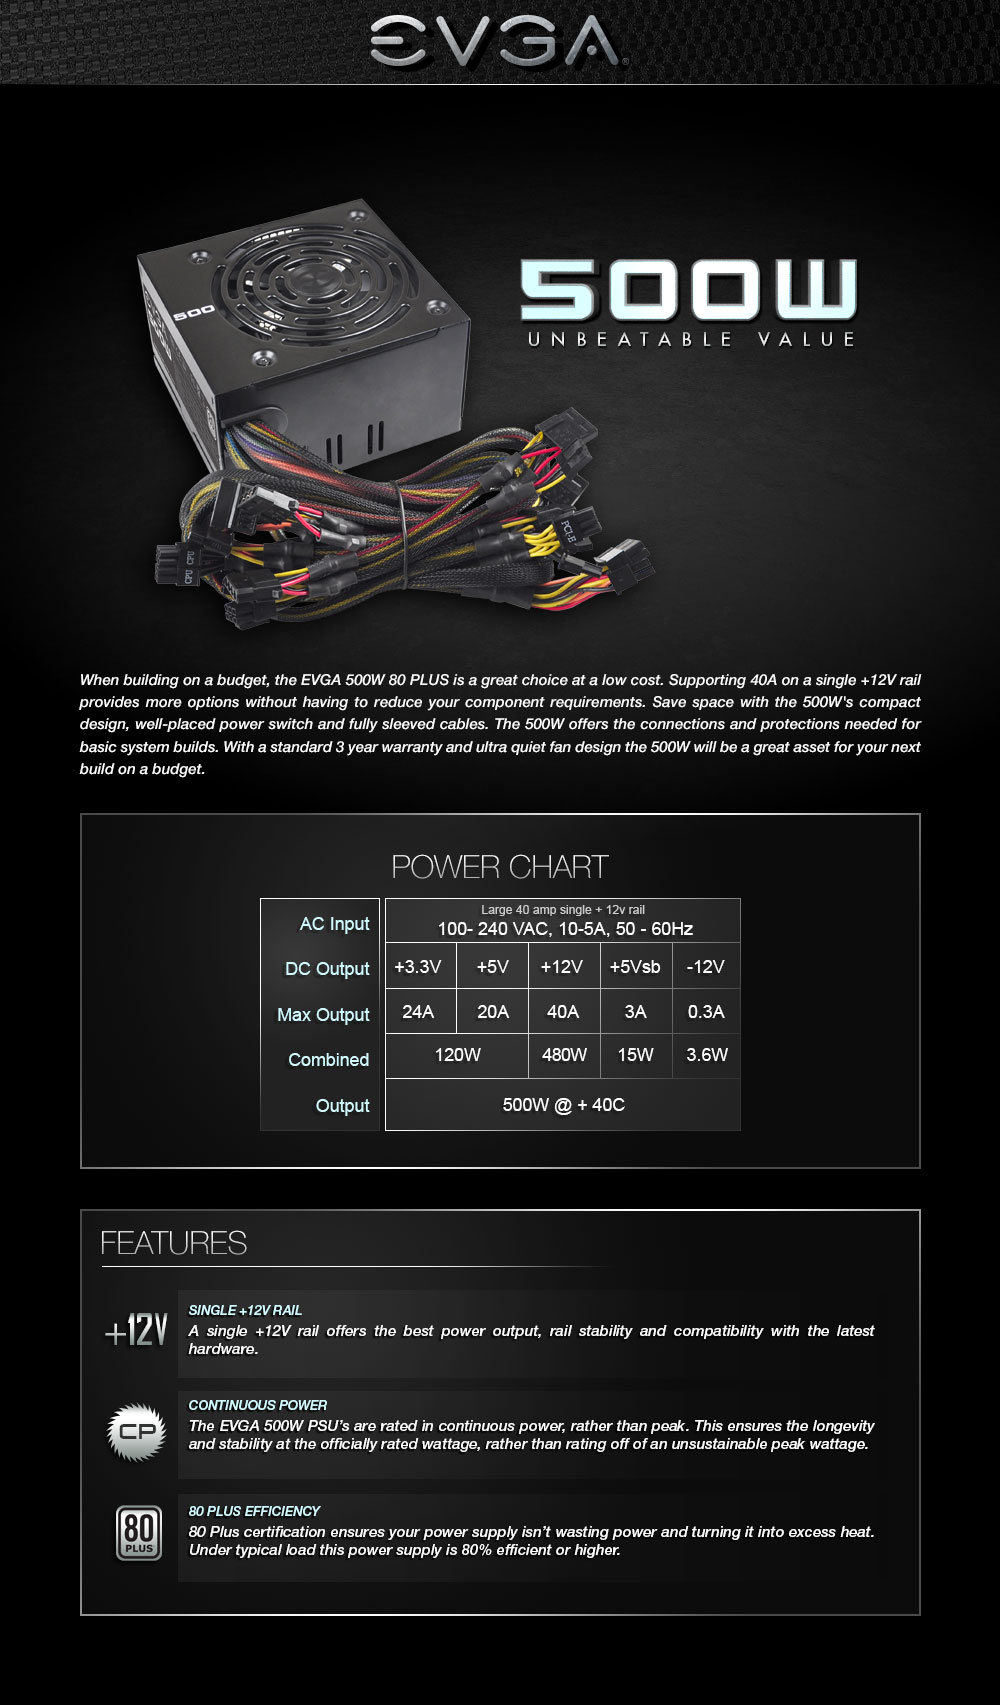 code alarm elite 1100 wiring diagram asco 4000 evga products 500 w1 80 white 500w 3 year warranty cable length